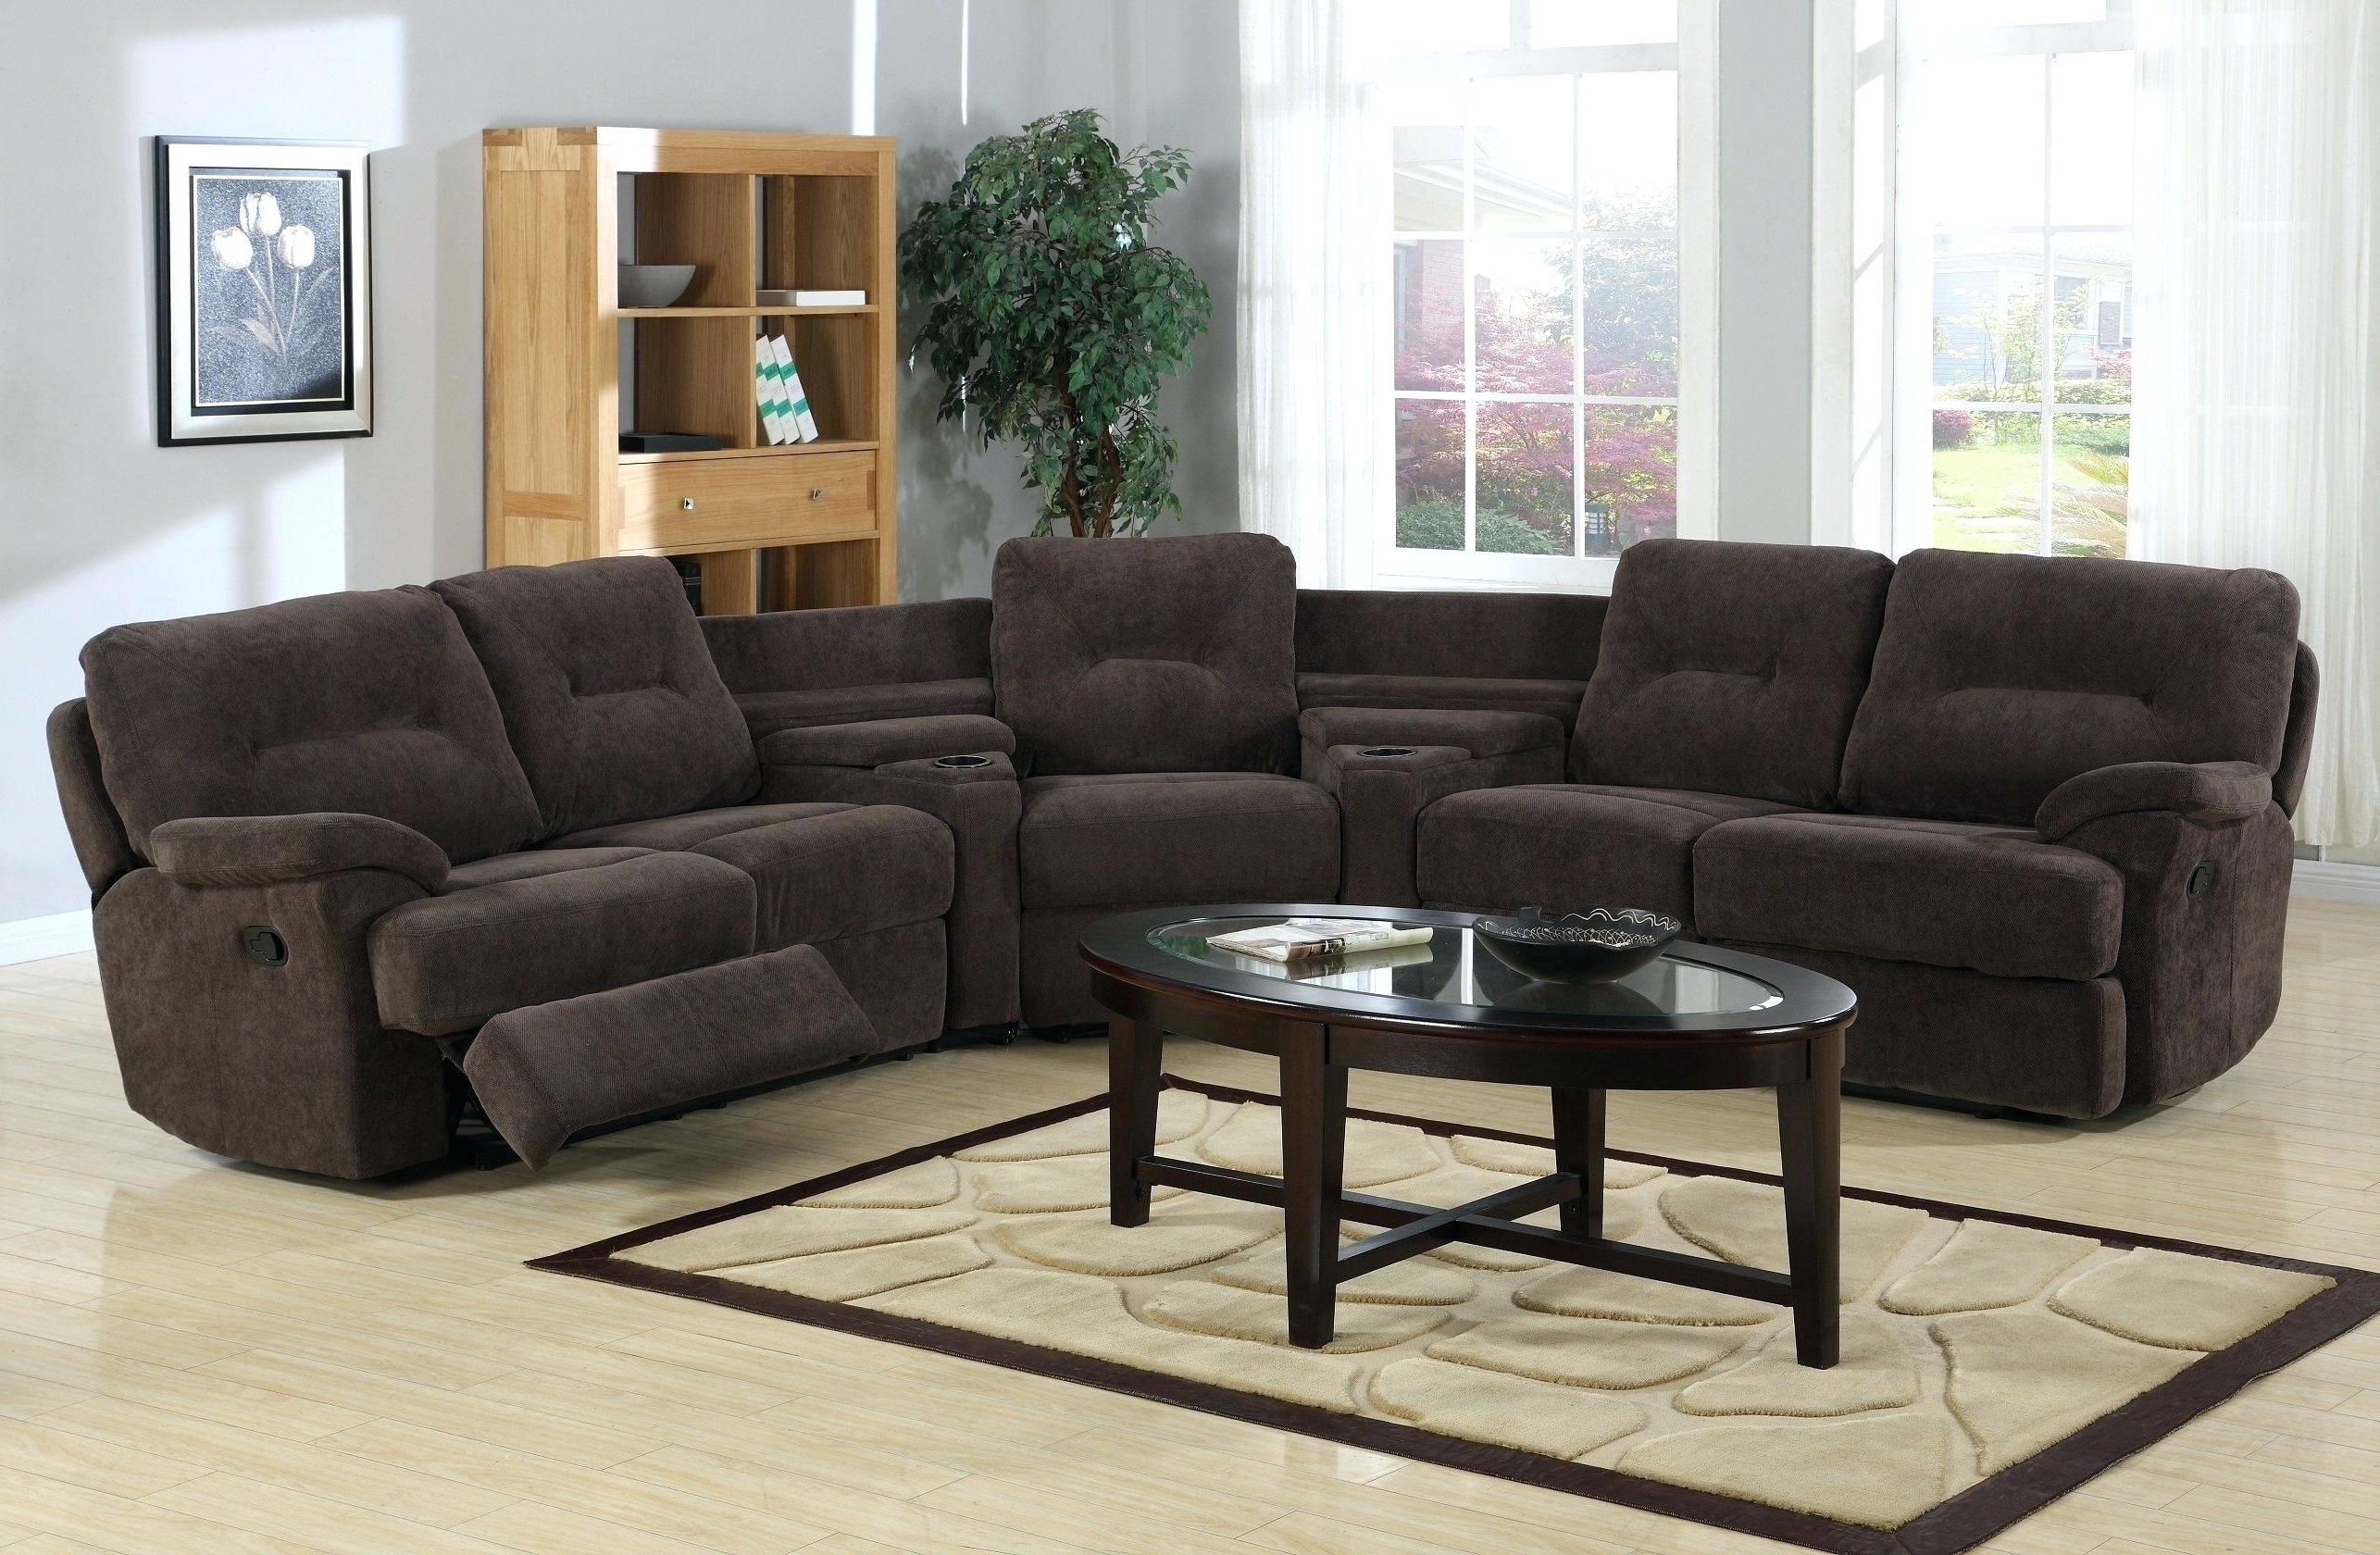 Curved Sectional Sofas With Recliner With Most Popular Curved Sectional Couch Round Sofa Slipcover Canada Sofas At Macys (View 9 of 20)